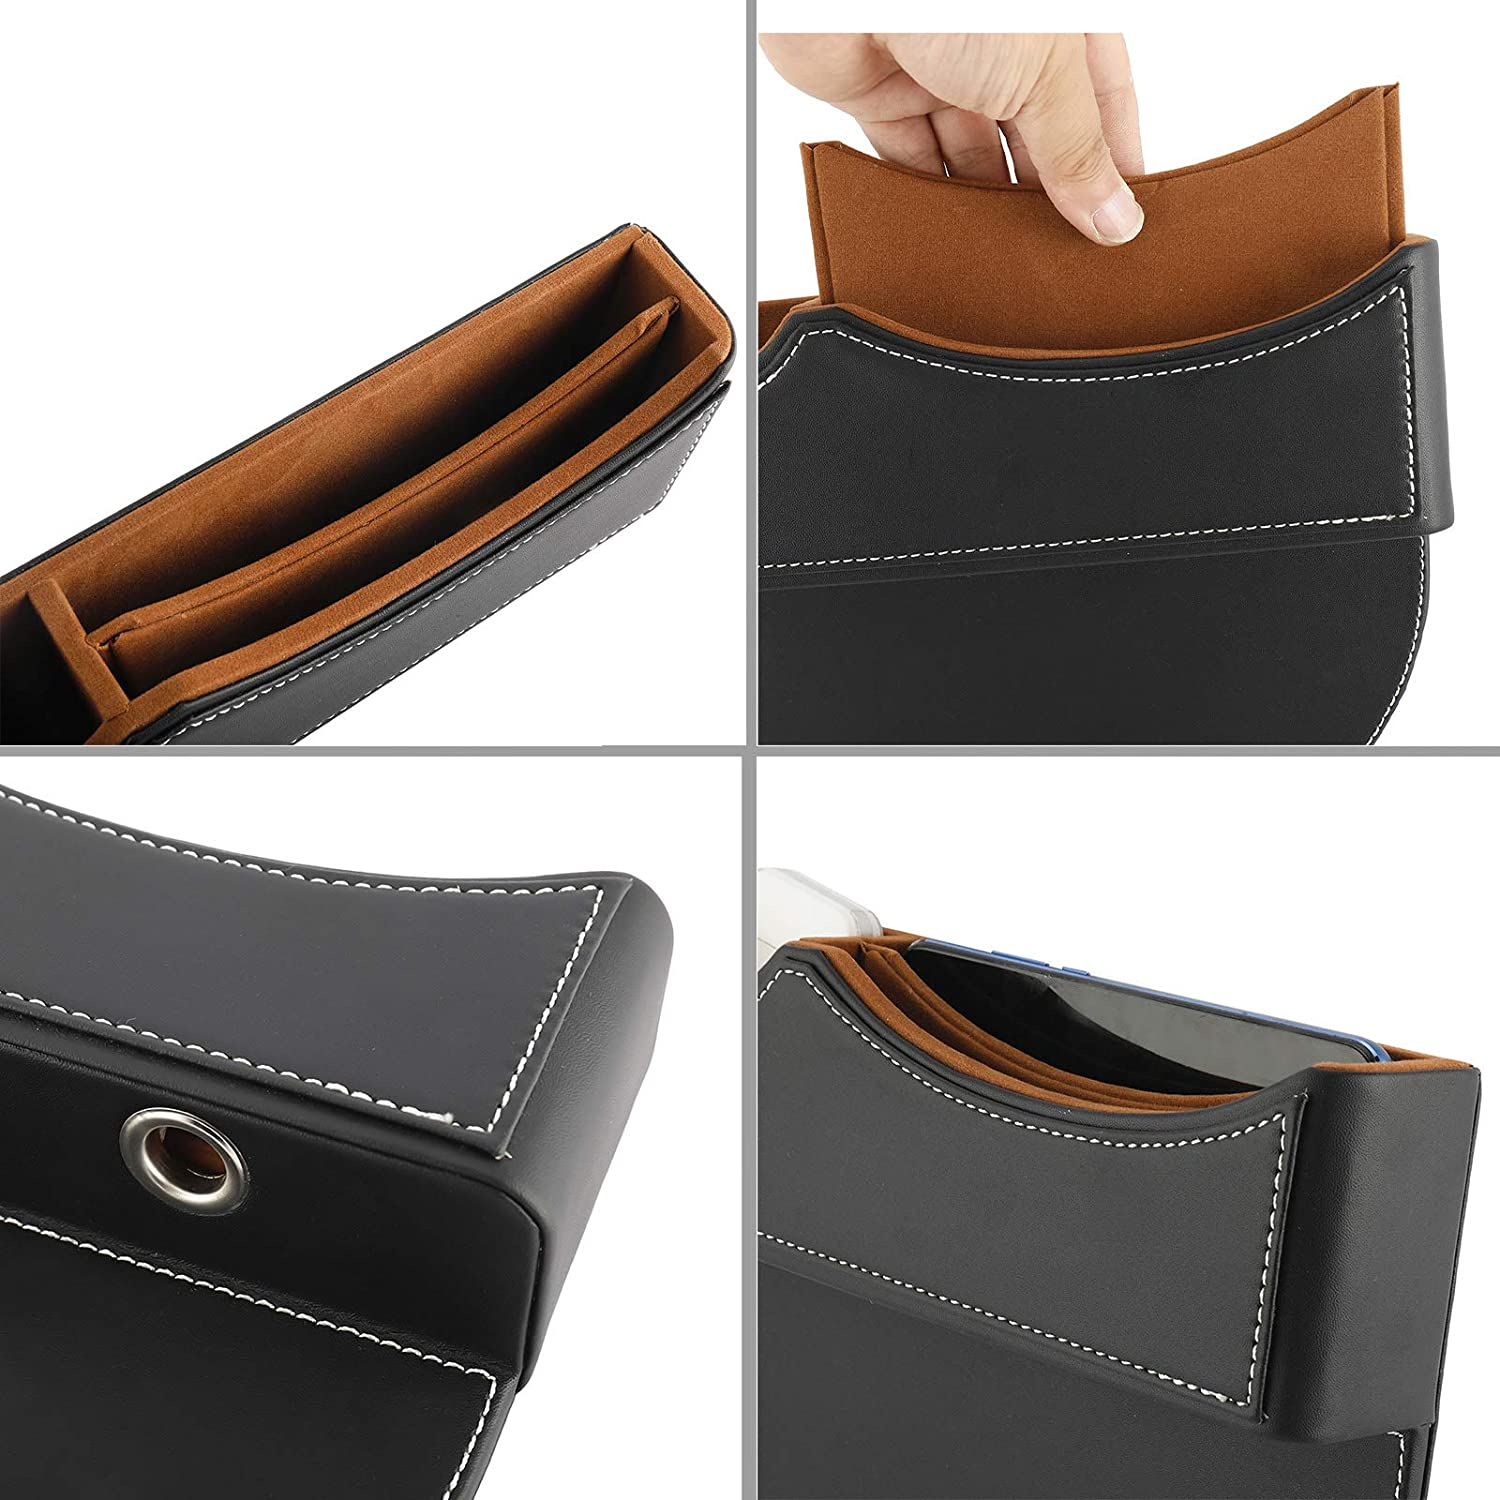 NovelBee 2 Pack of PU Leather Car Seat Gap Filler,Console Organizer,Pocket,Seat Catcher,Seat Crevice Storage Box